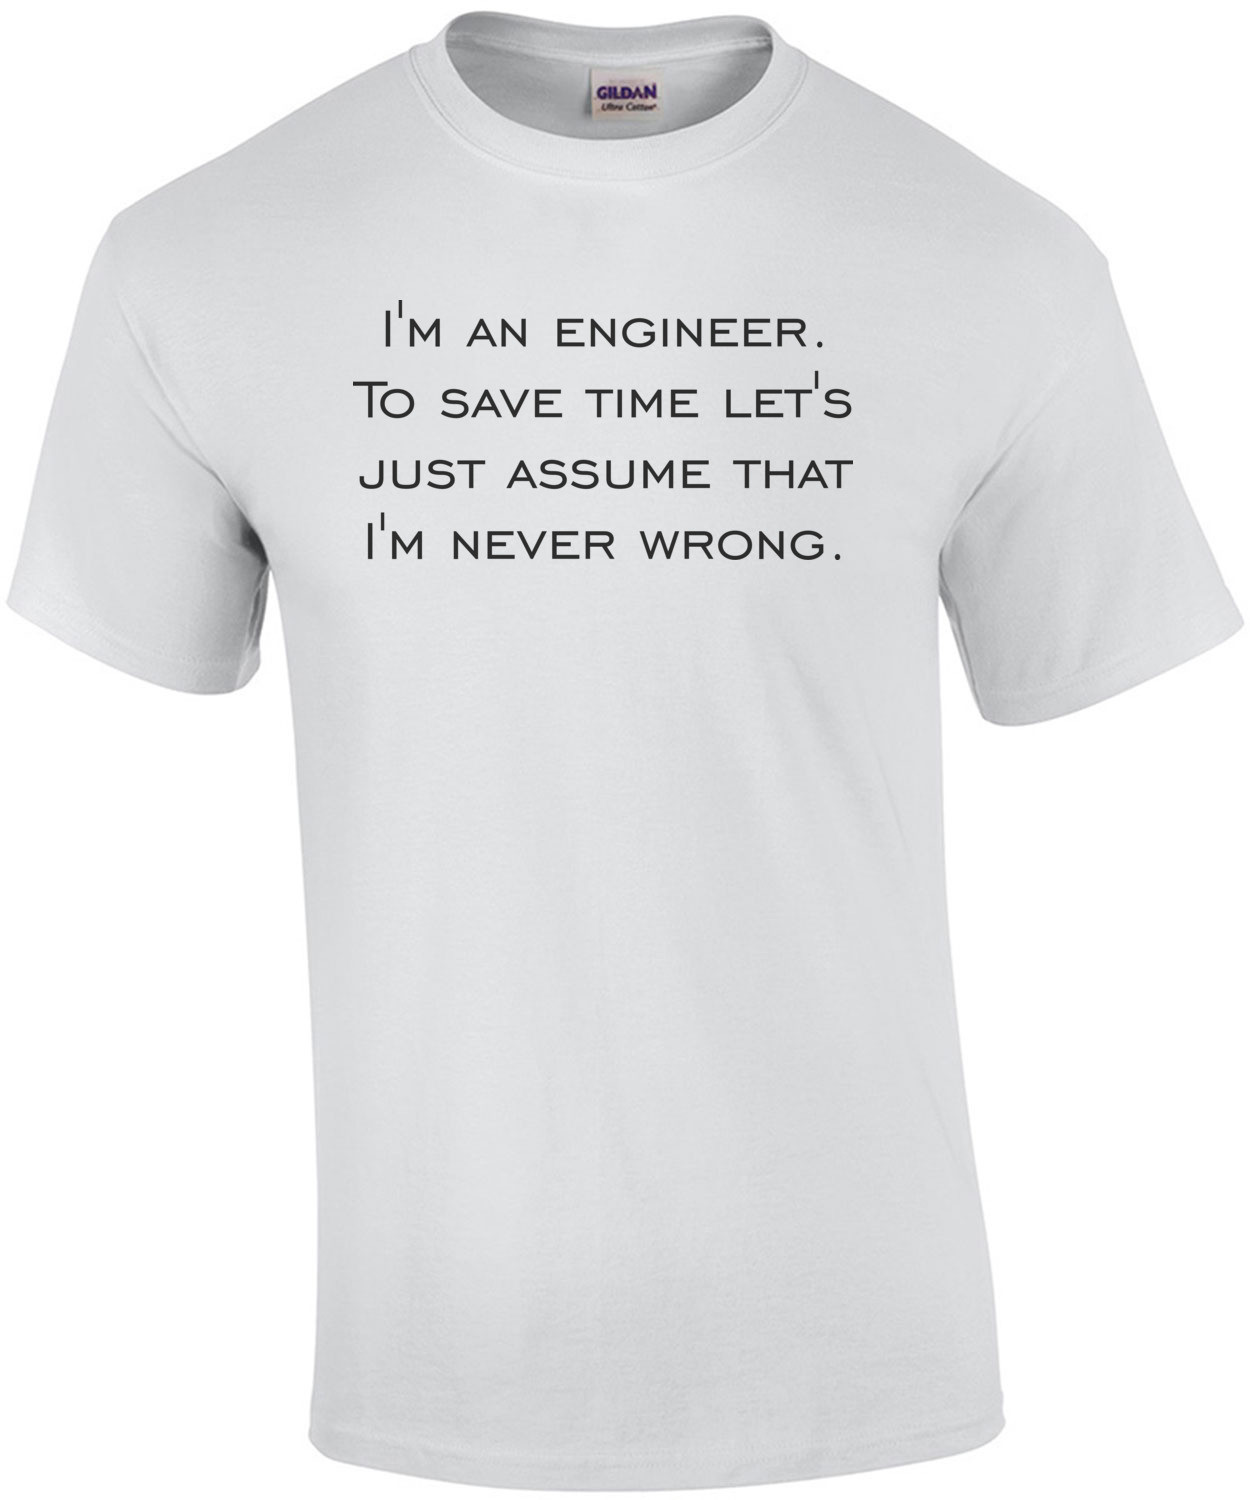 I'm an engineer. To save time let's just assume that I'm never wrong. Shirt